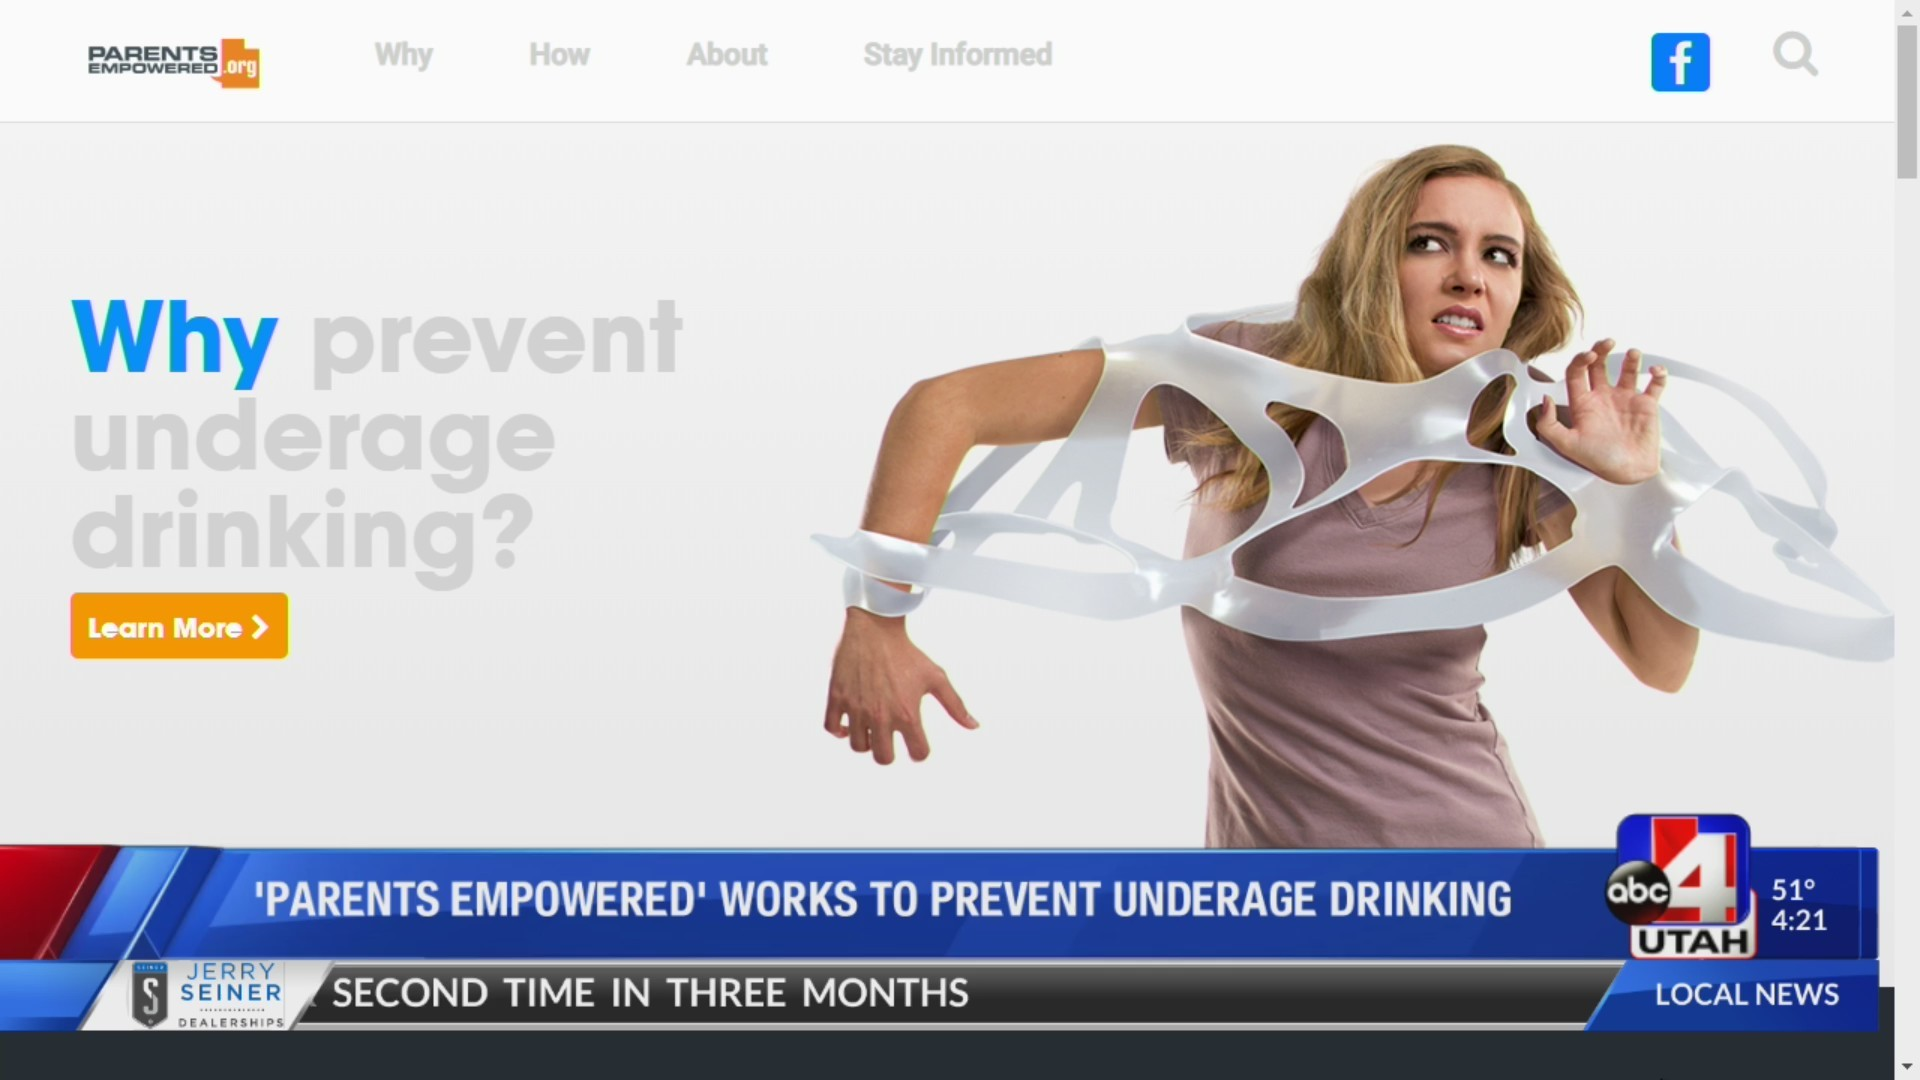 Underage drinking and prevention skills parents can use